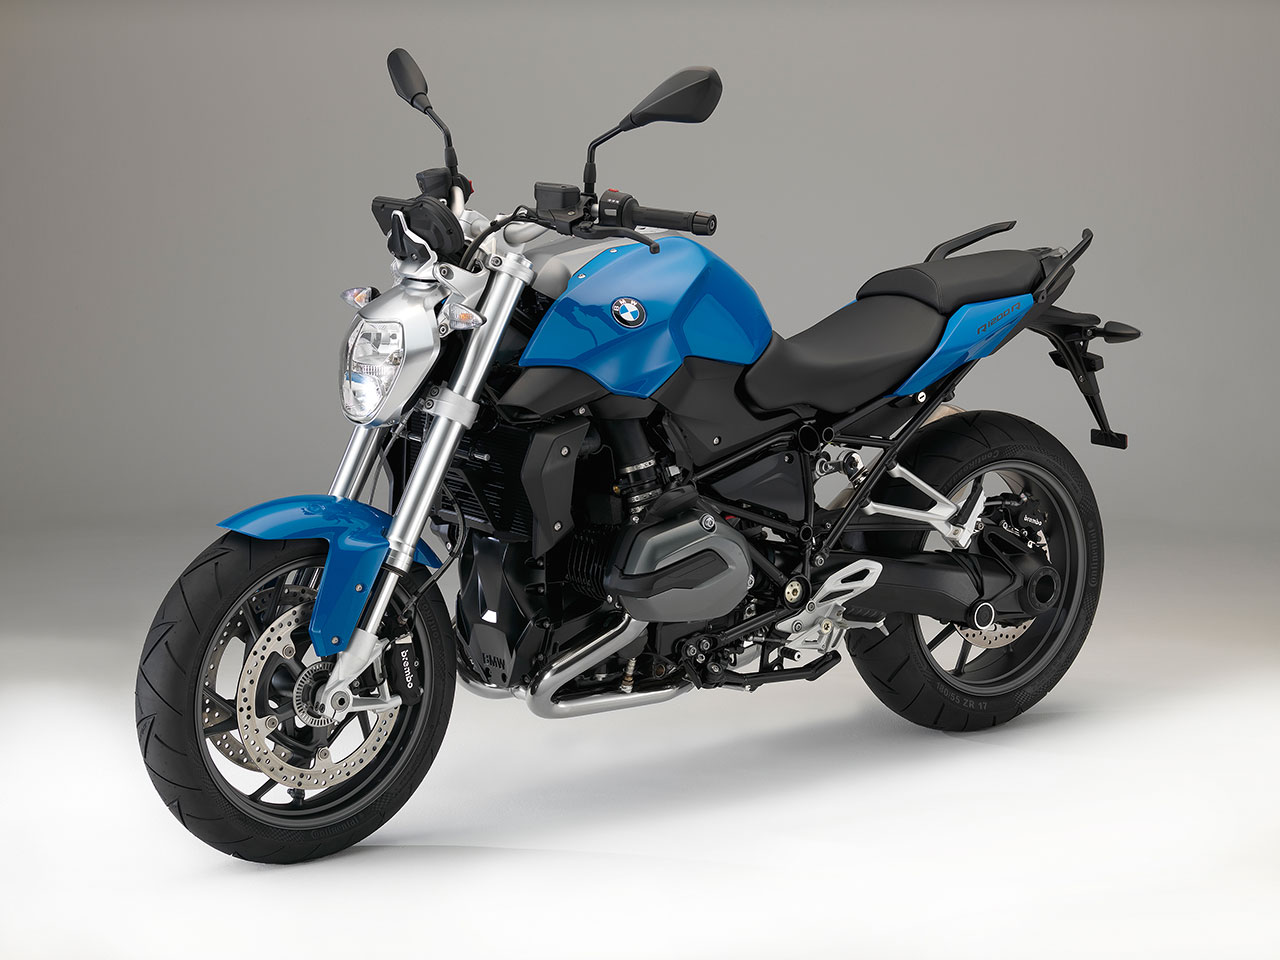 BMW R 1200 R Motorcycle